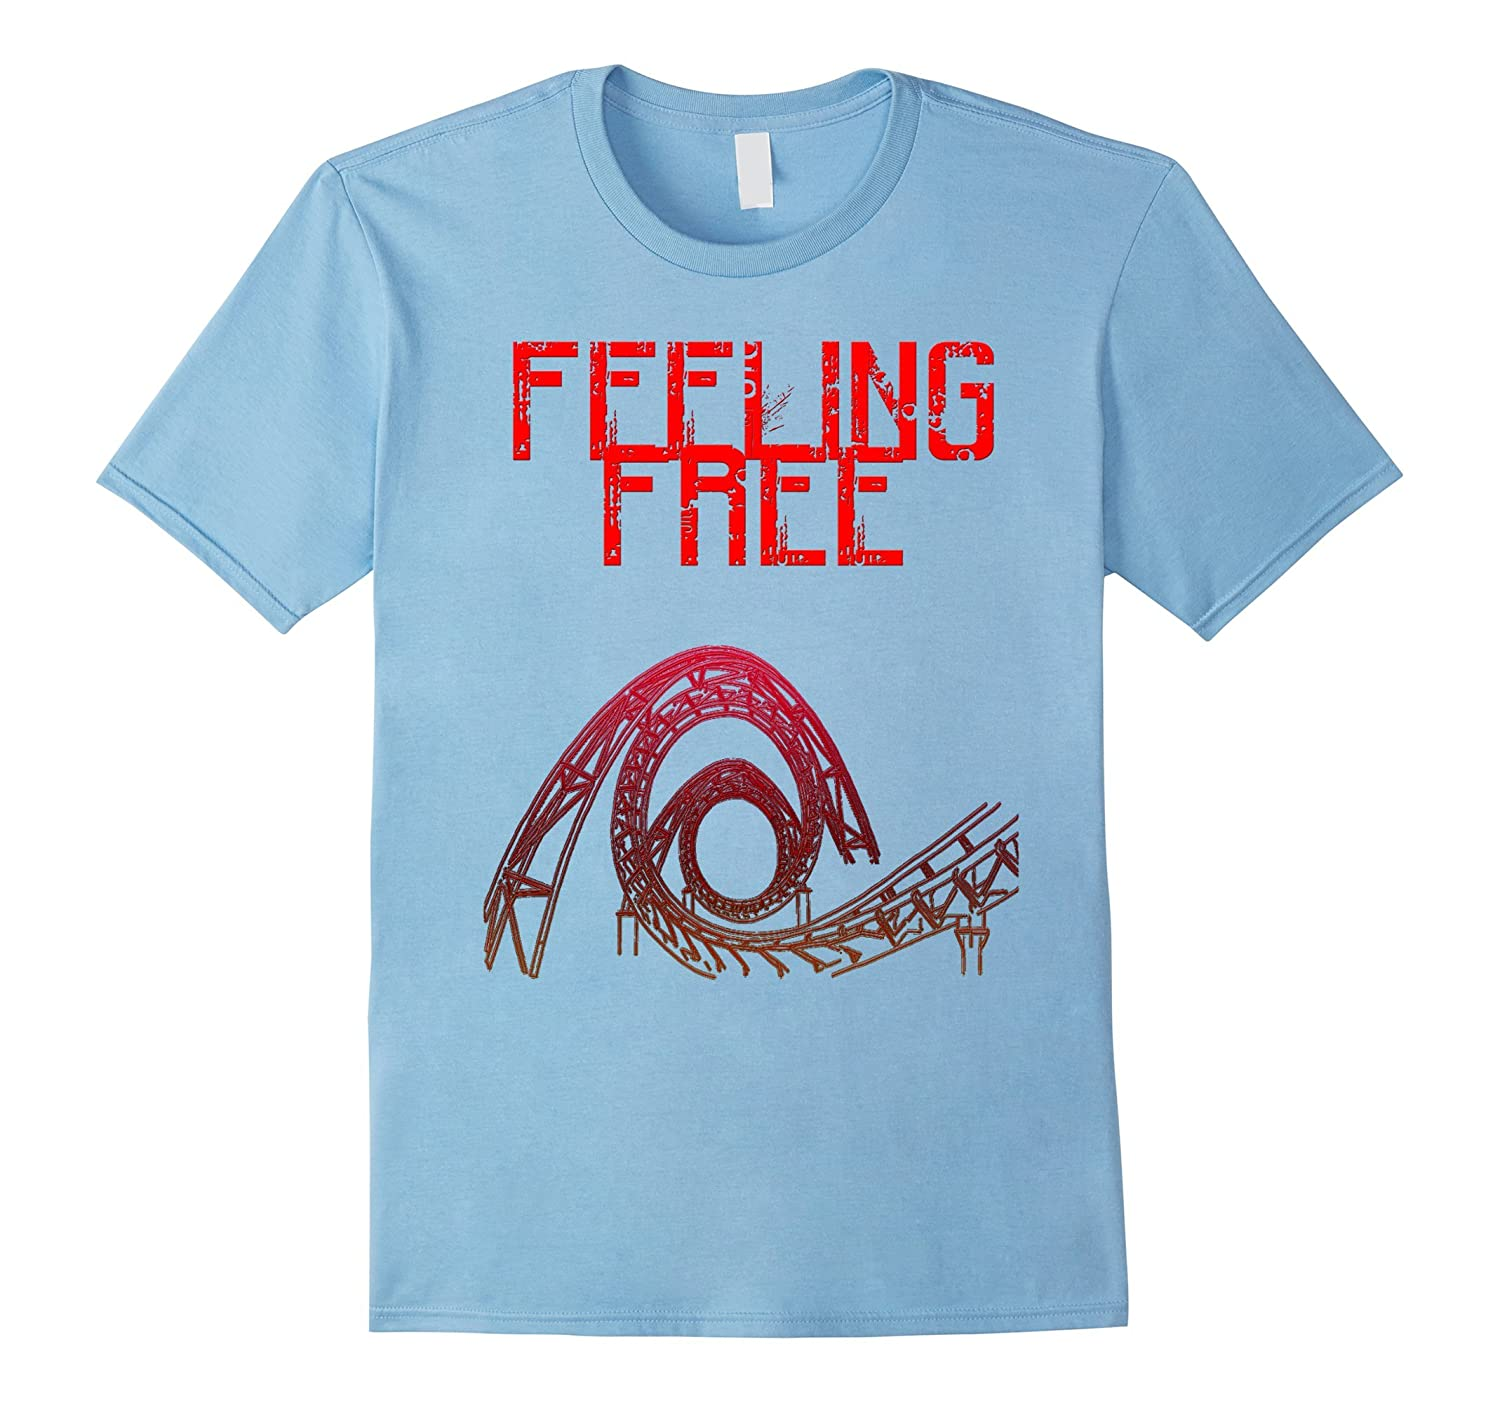 Feeling Free Roller Coster T-Shirt-TJ